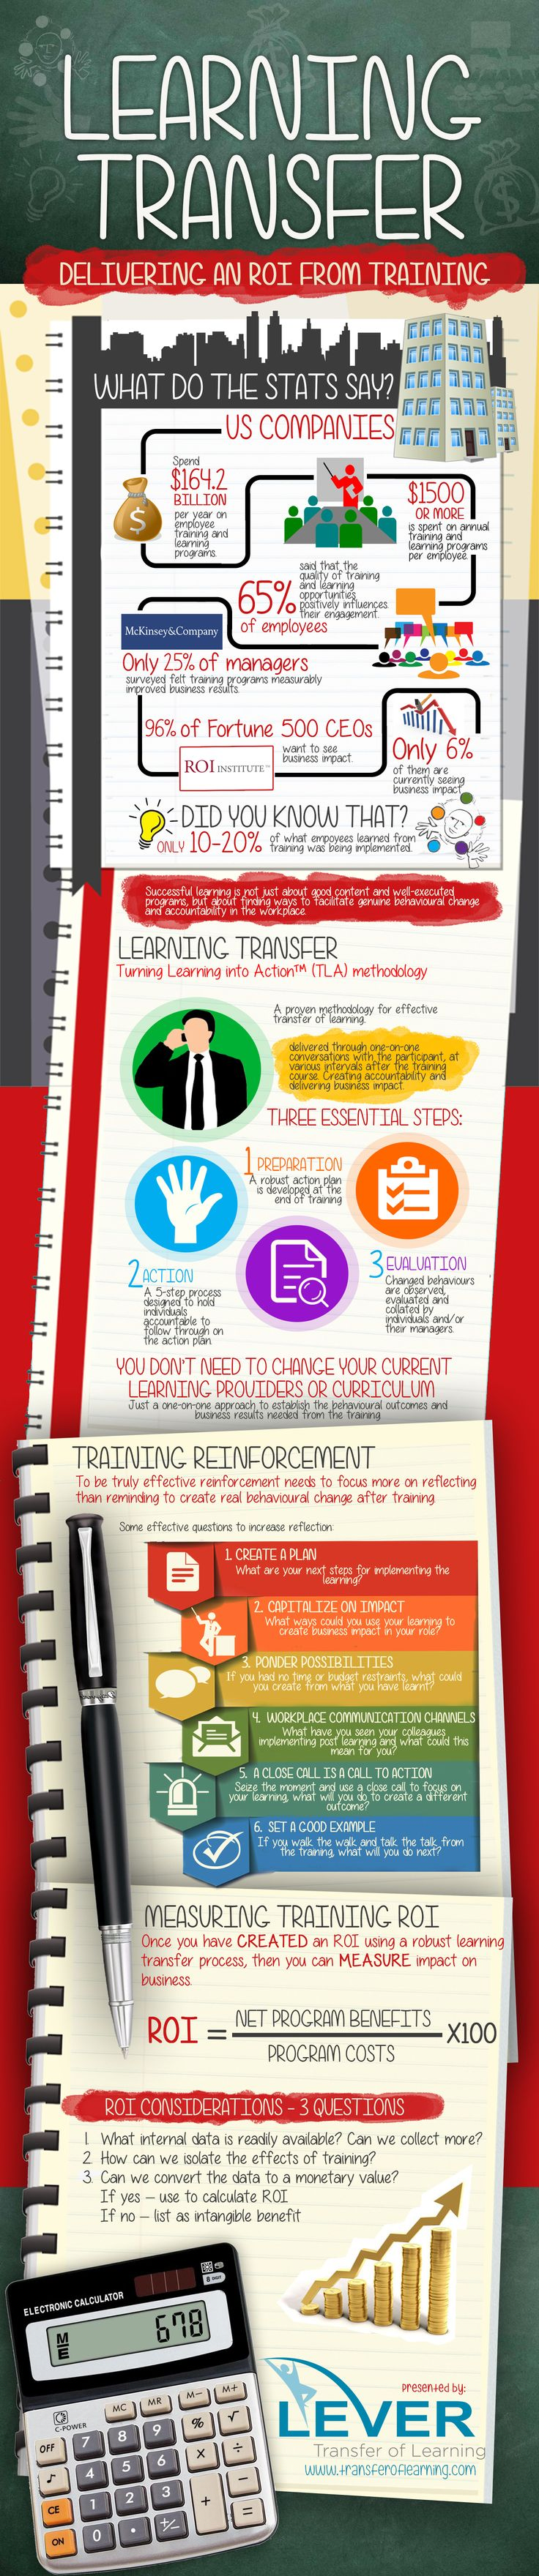 ROI from Training with Learning Transfer Infographic - http://elearninginfographics.com/roi-training-learning-transfer-infographic/